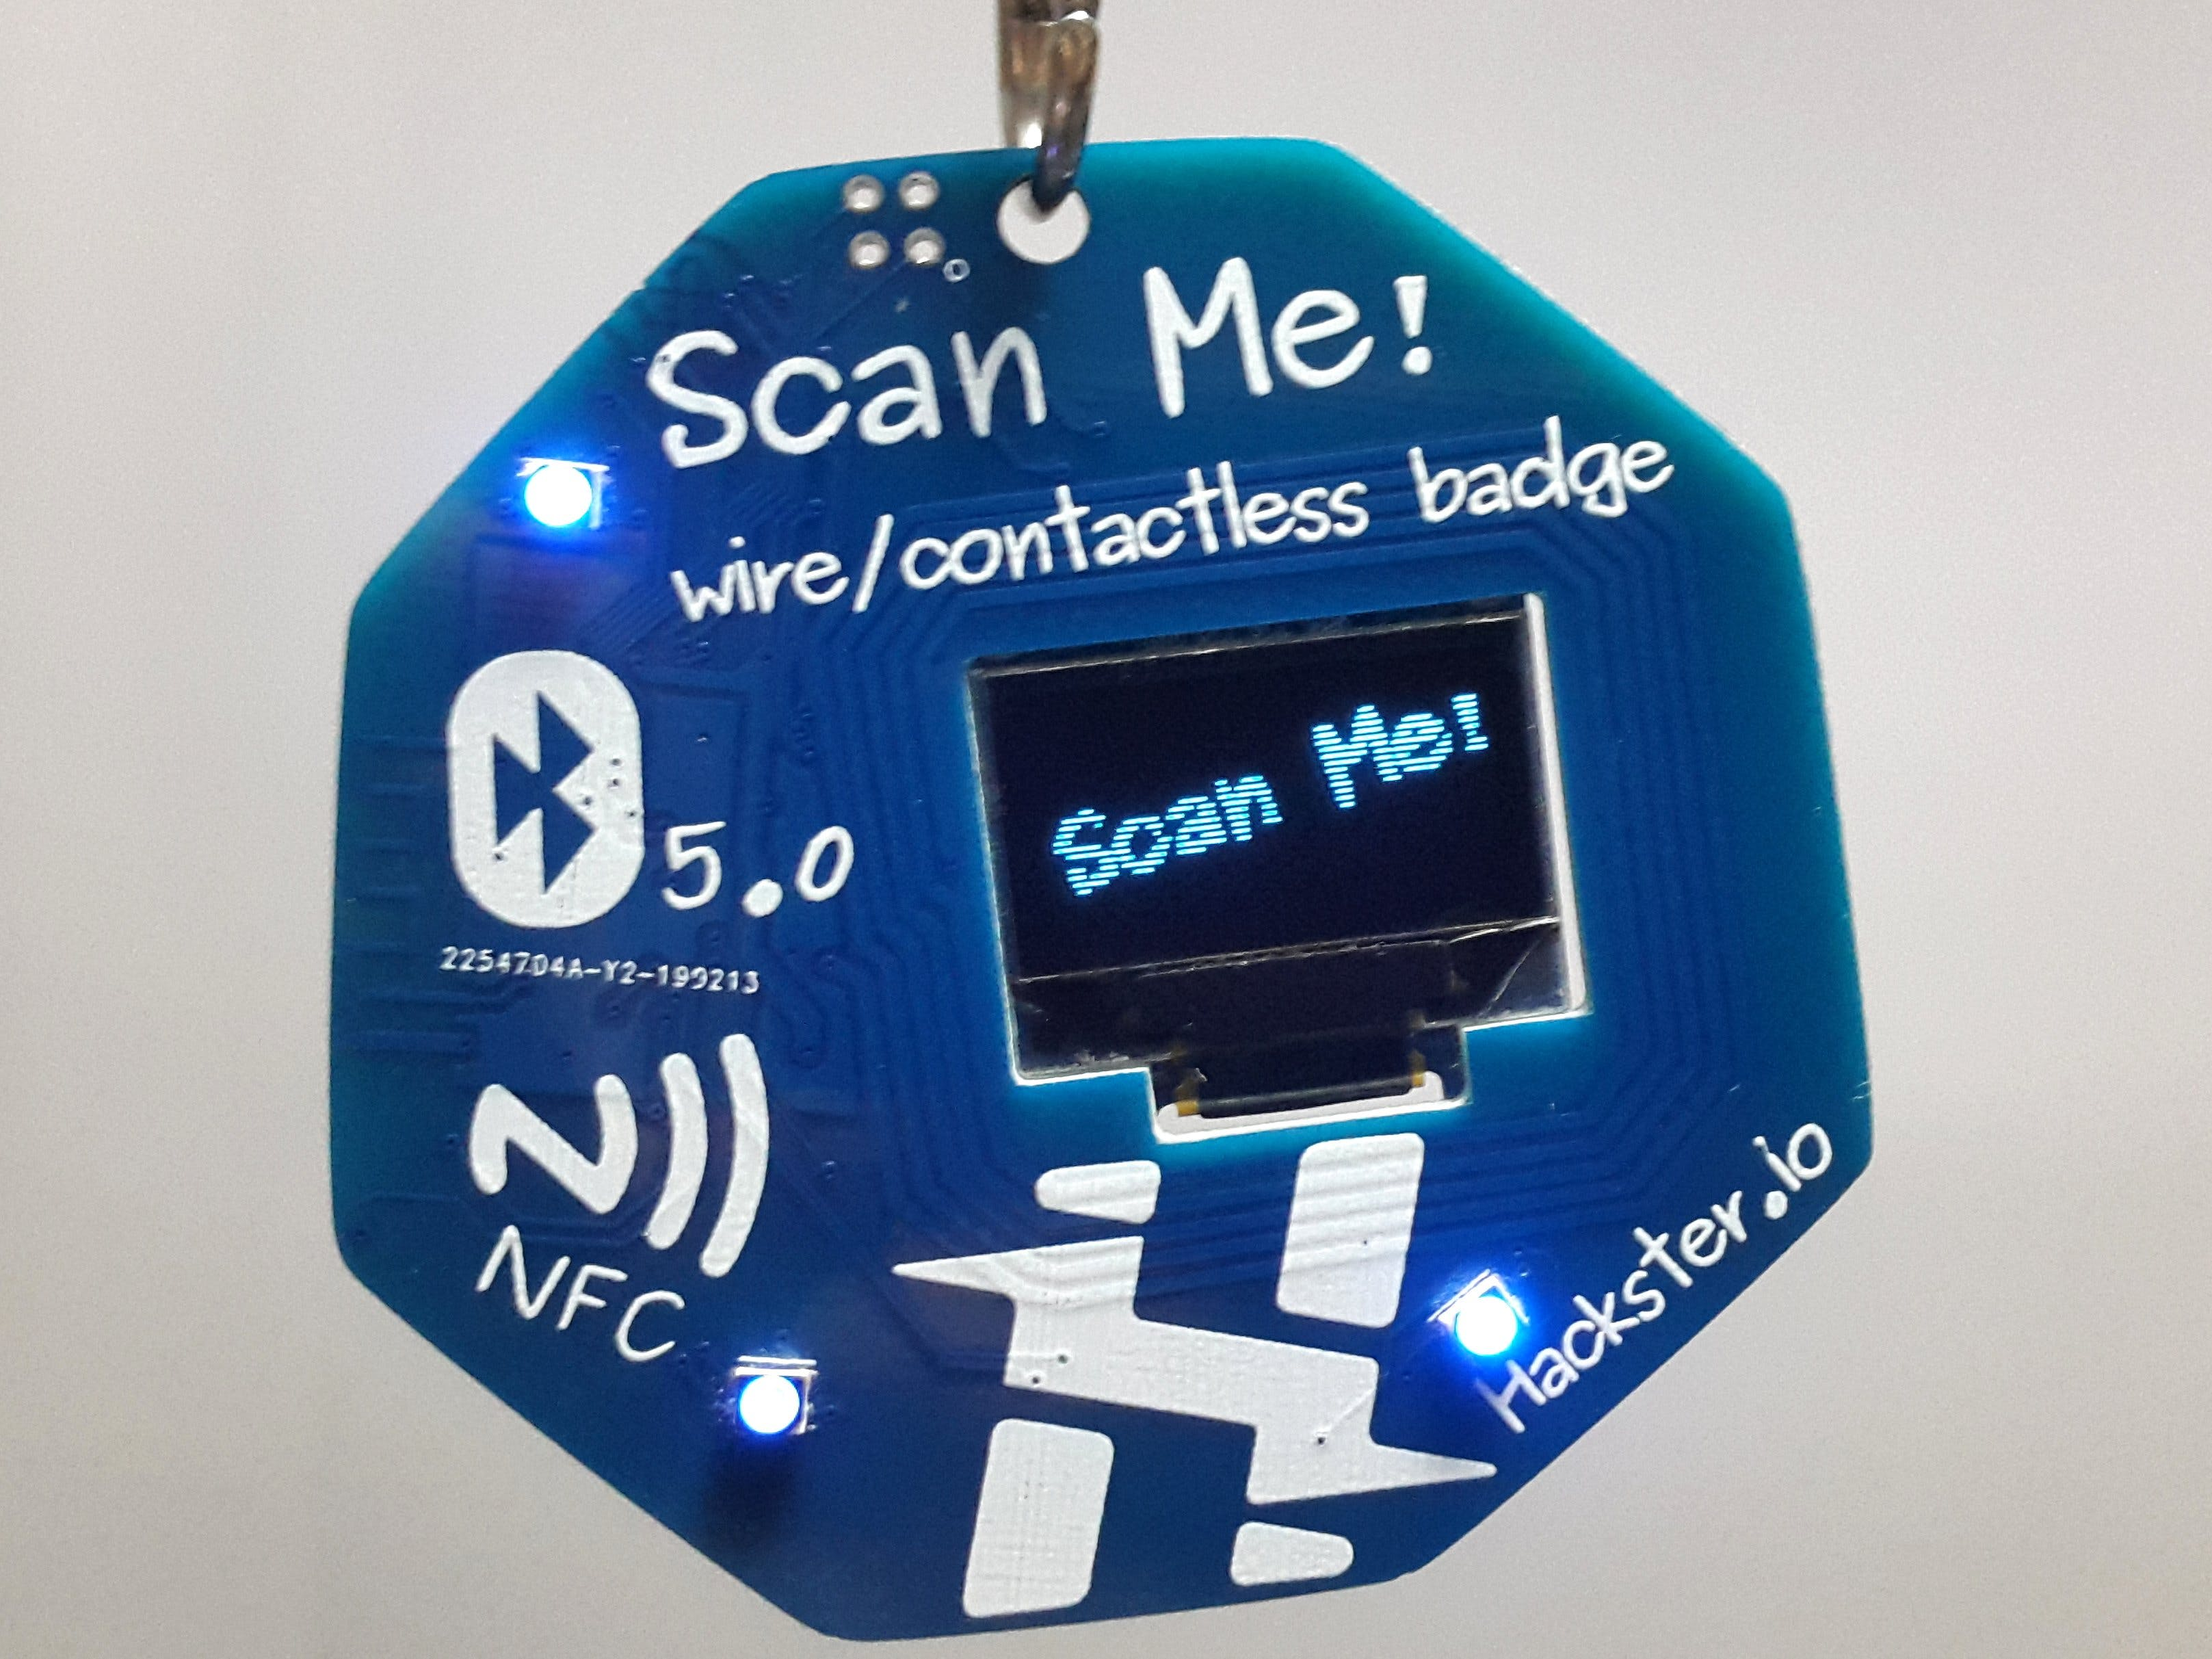 Scan Me! - Wire / Contactless Badge